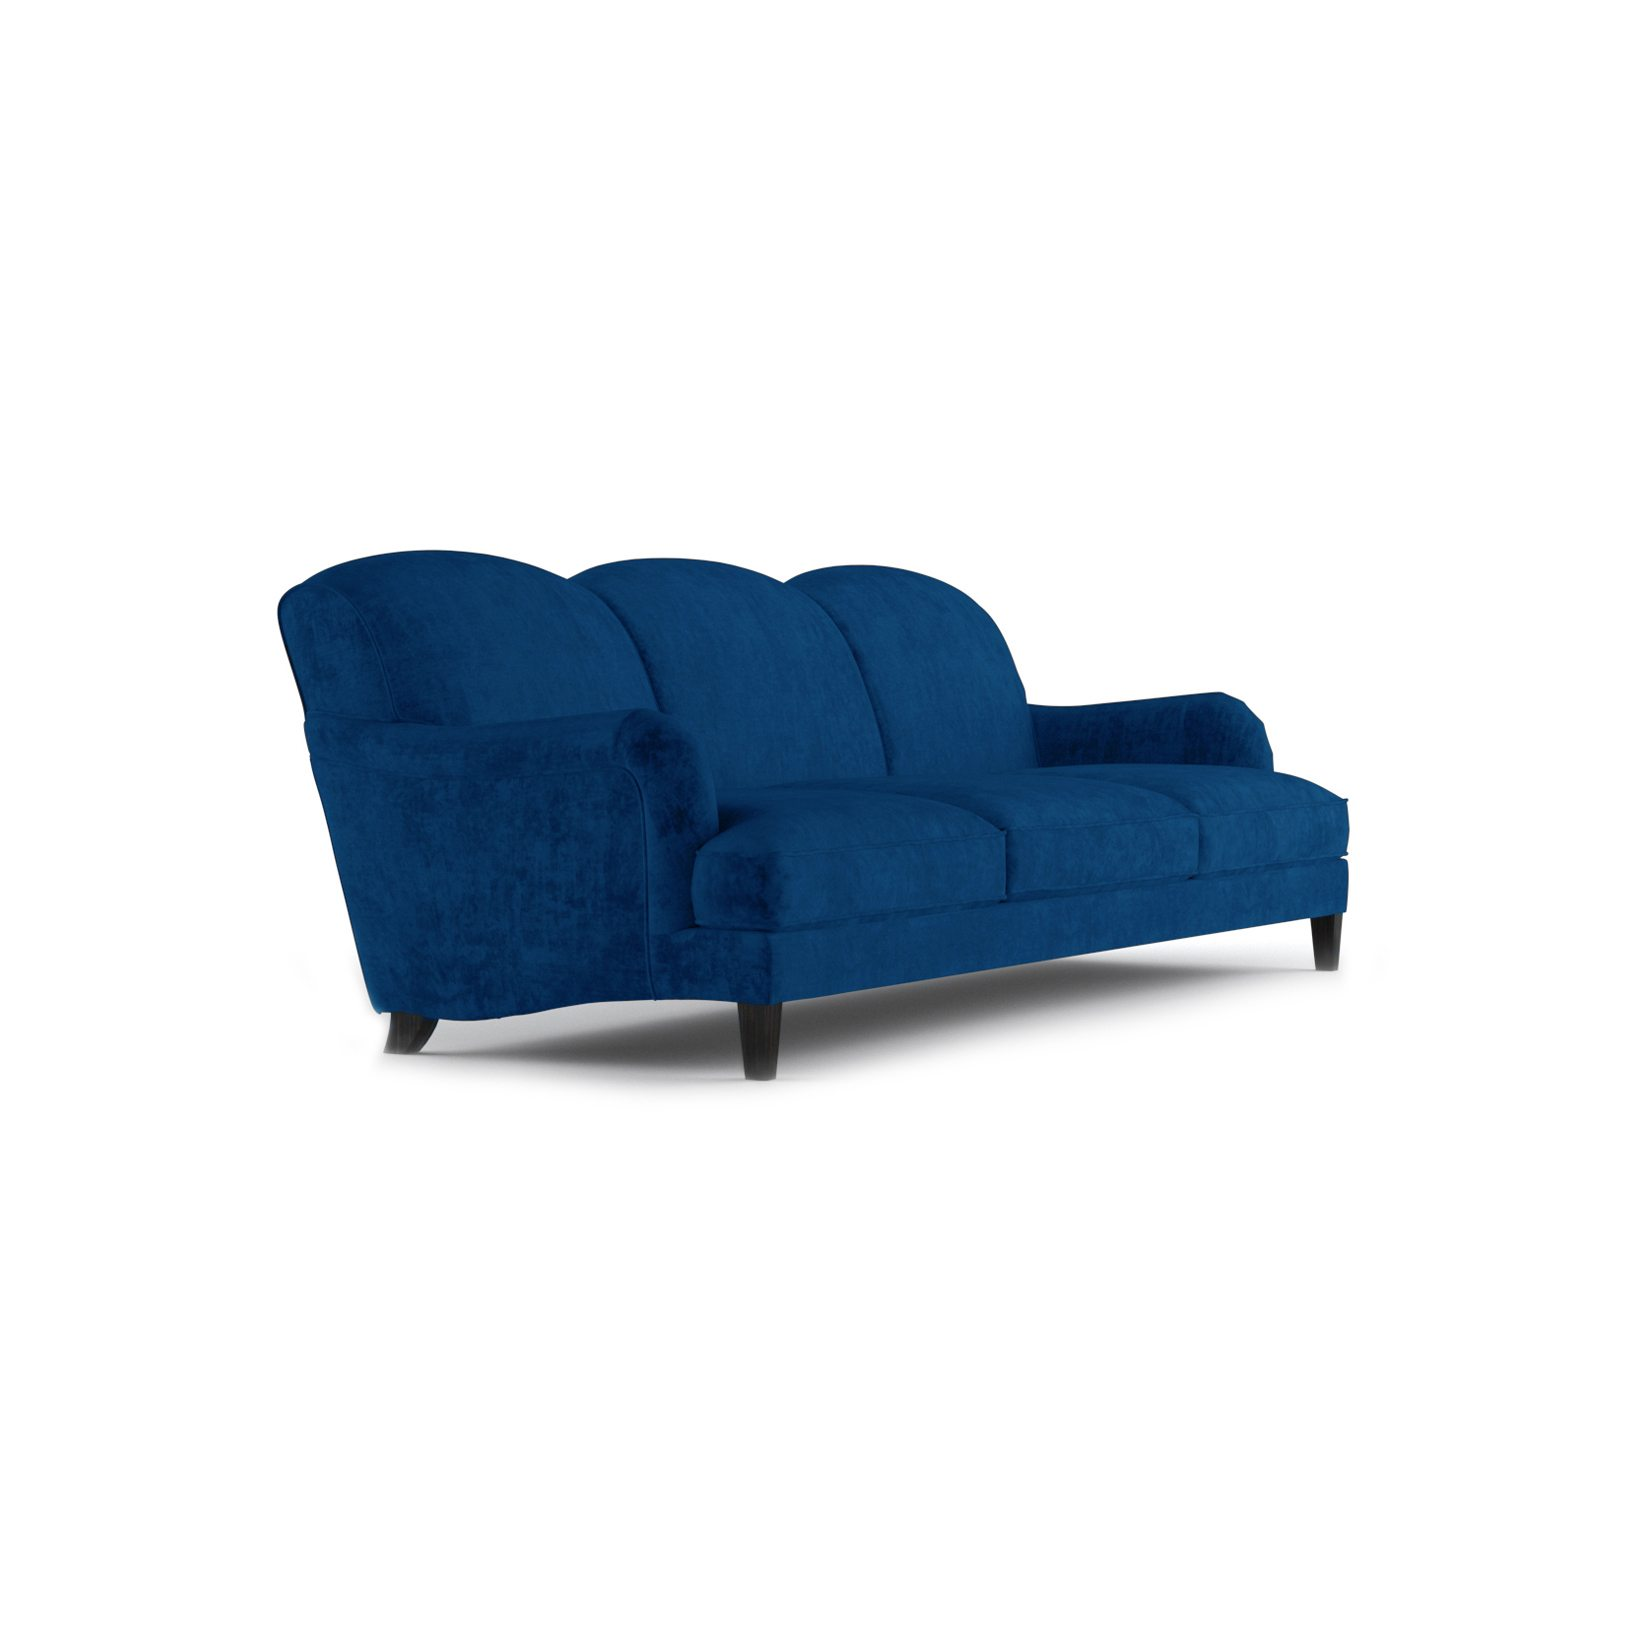 Windsor Three and a Half Seater Sofa by Bonham & Bonham Blue 11